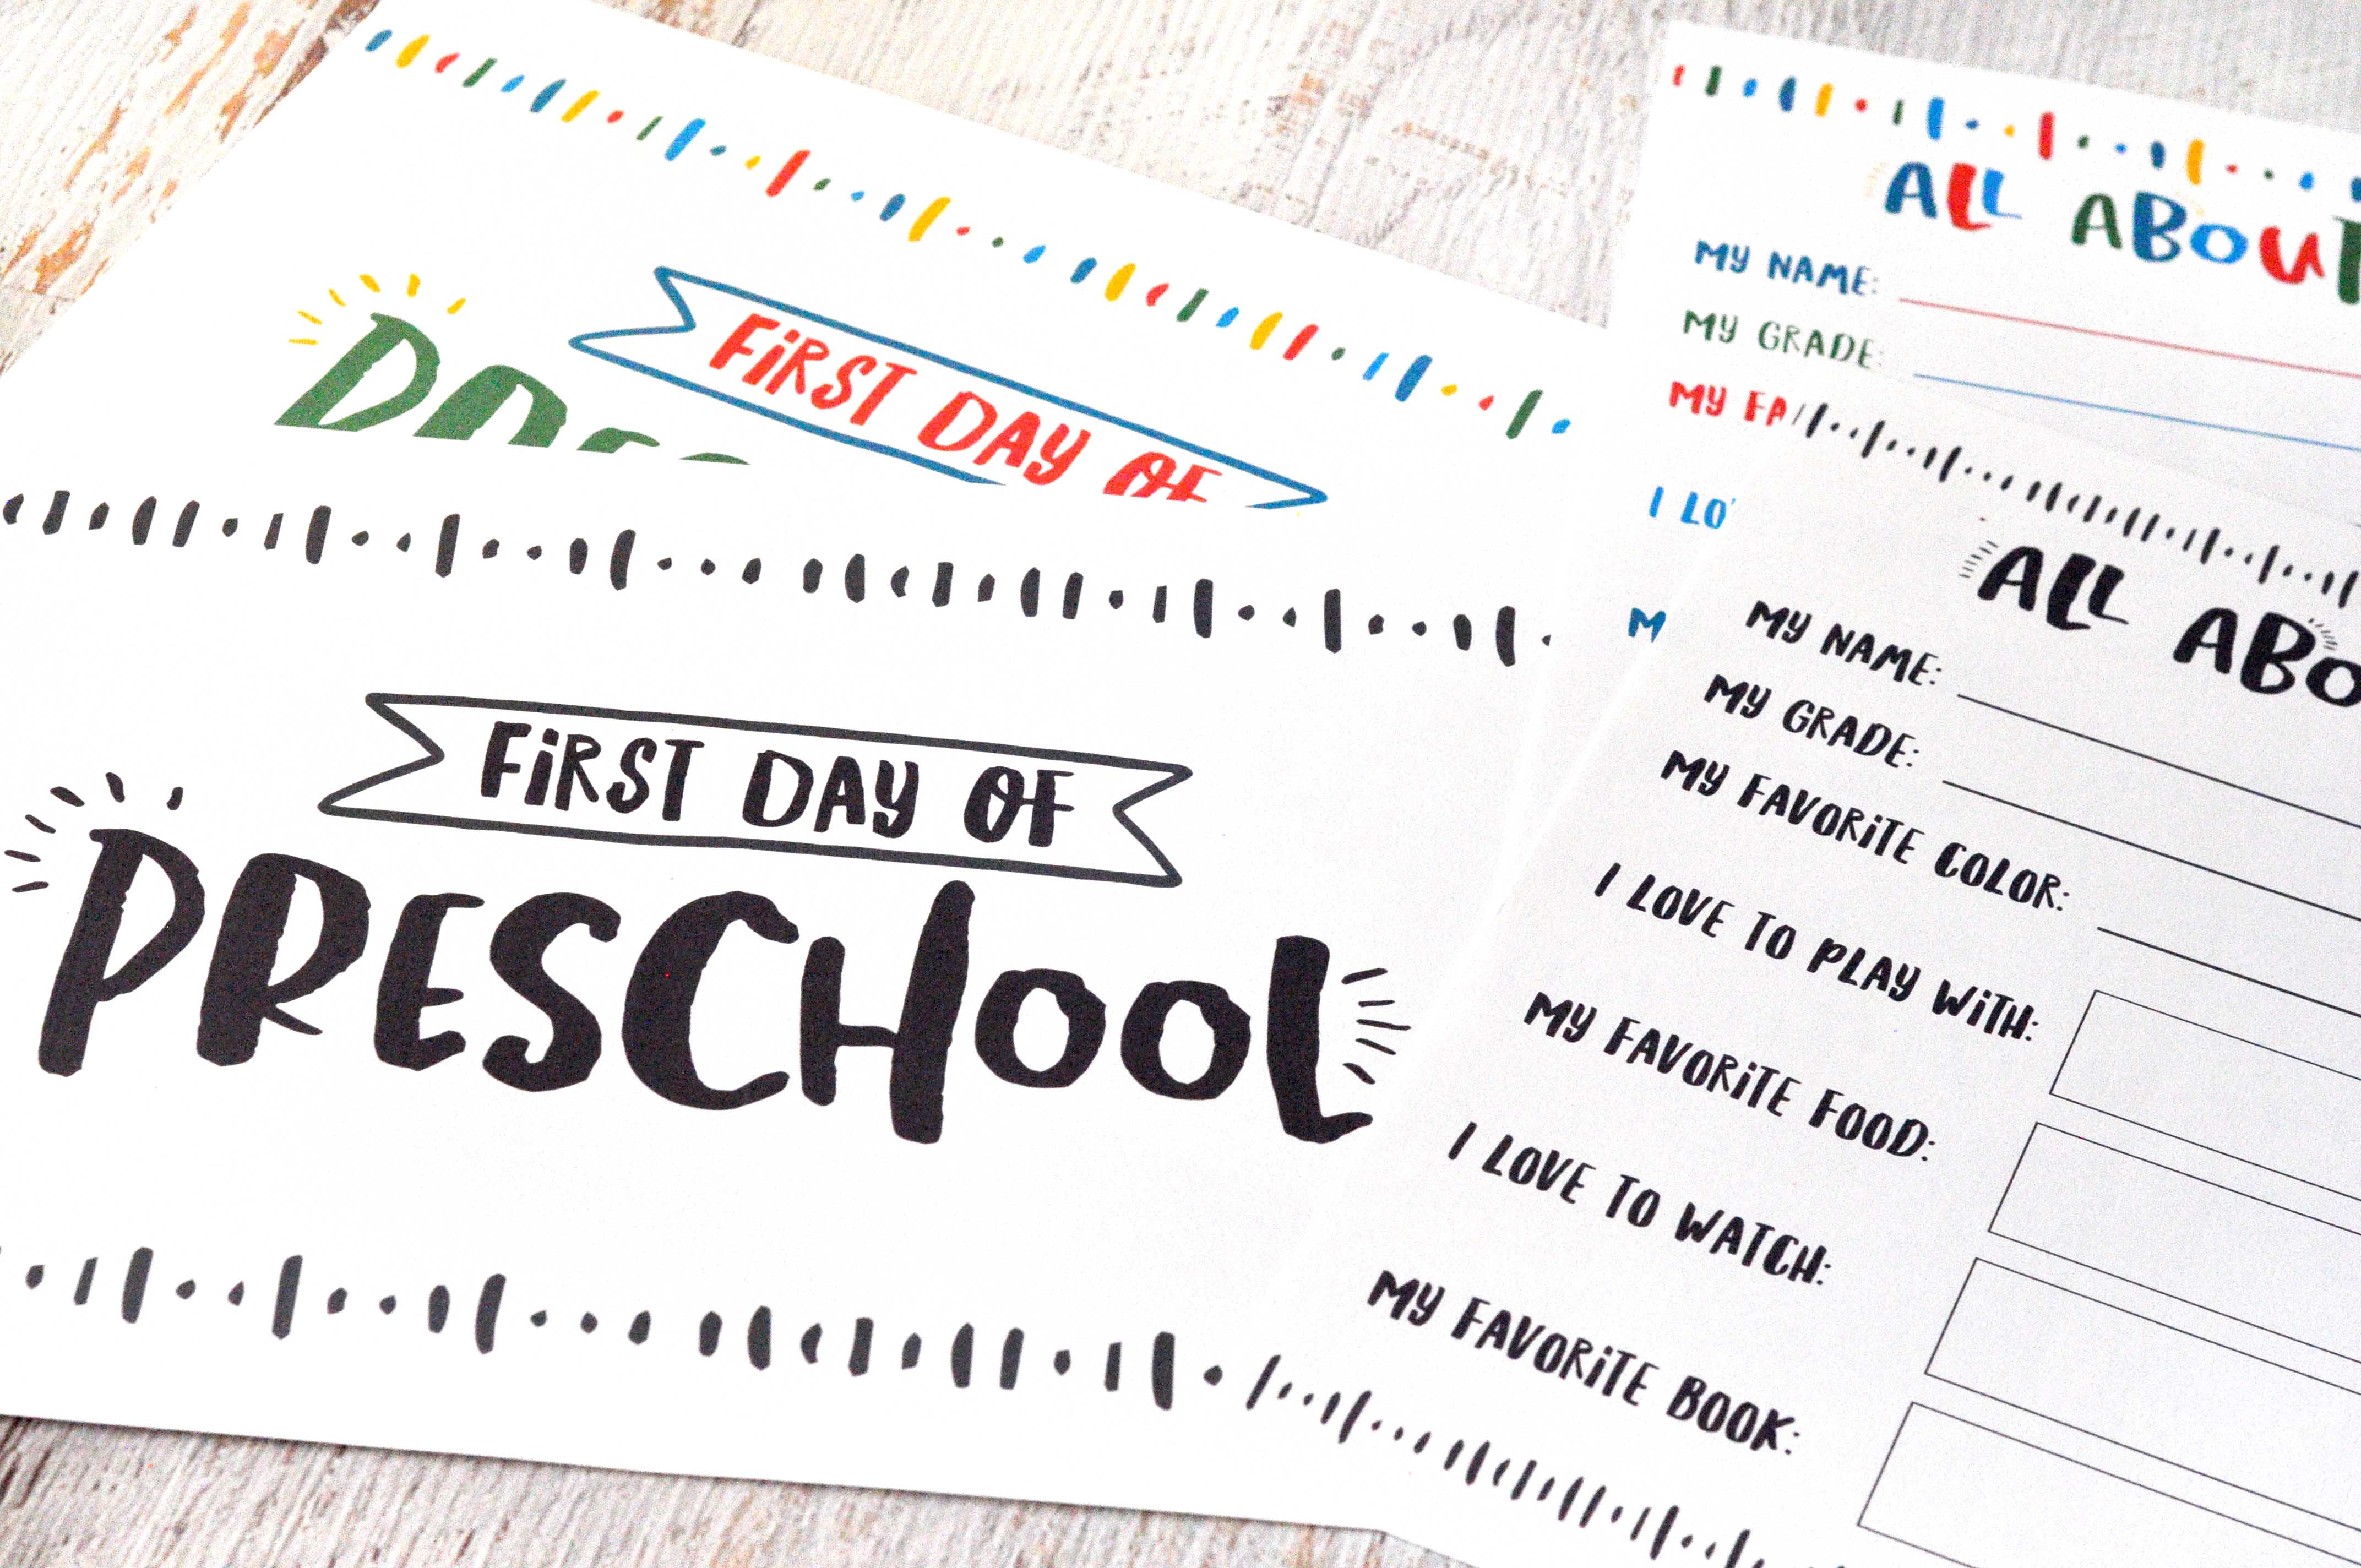 """These free printables are perfect for the first day of school! Let the kids hold the first day of school signs so you can take pictures & remember exactly what they looked like on their first day of the school year. Plus, there's an """"All About Me"""" printable so they can record all their favorite things and what they loved on the first day of school. Get it today at www.TeepeeGIrl.com!"""